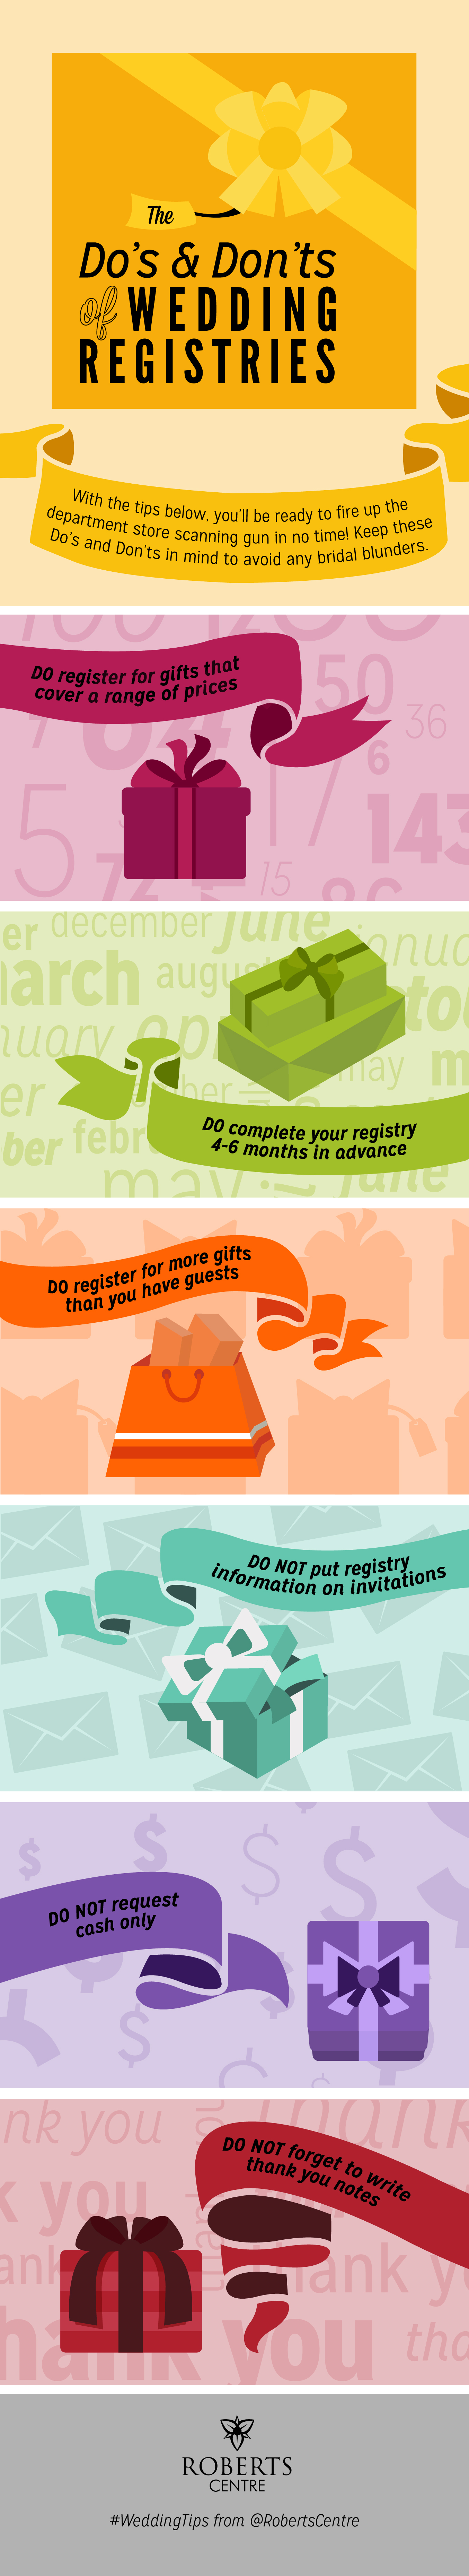 the dos and don 39 ts of wedding registry etiquette wedding On wedding registry etiquette